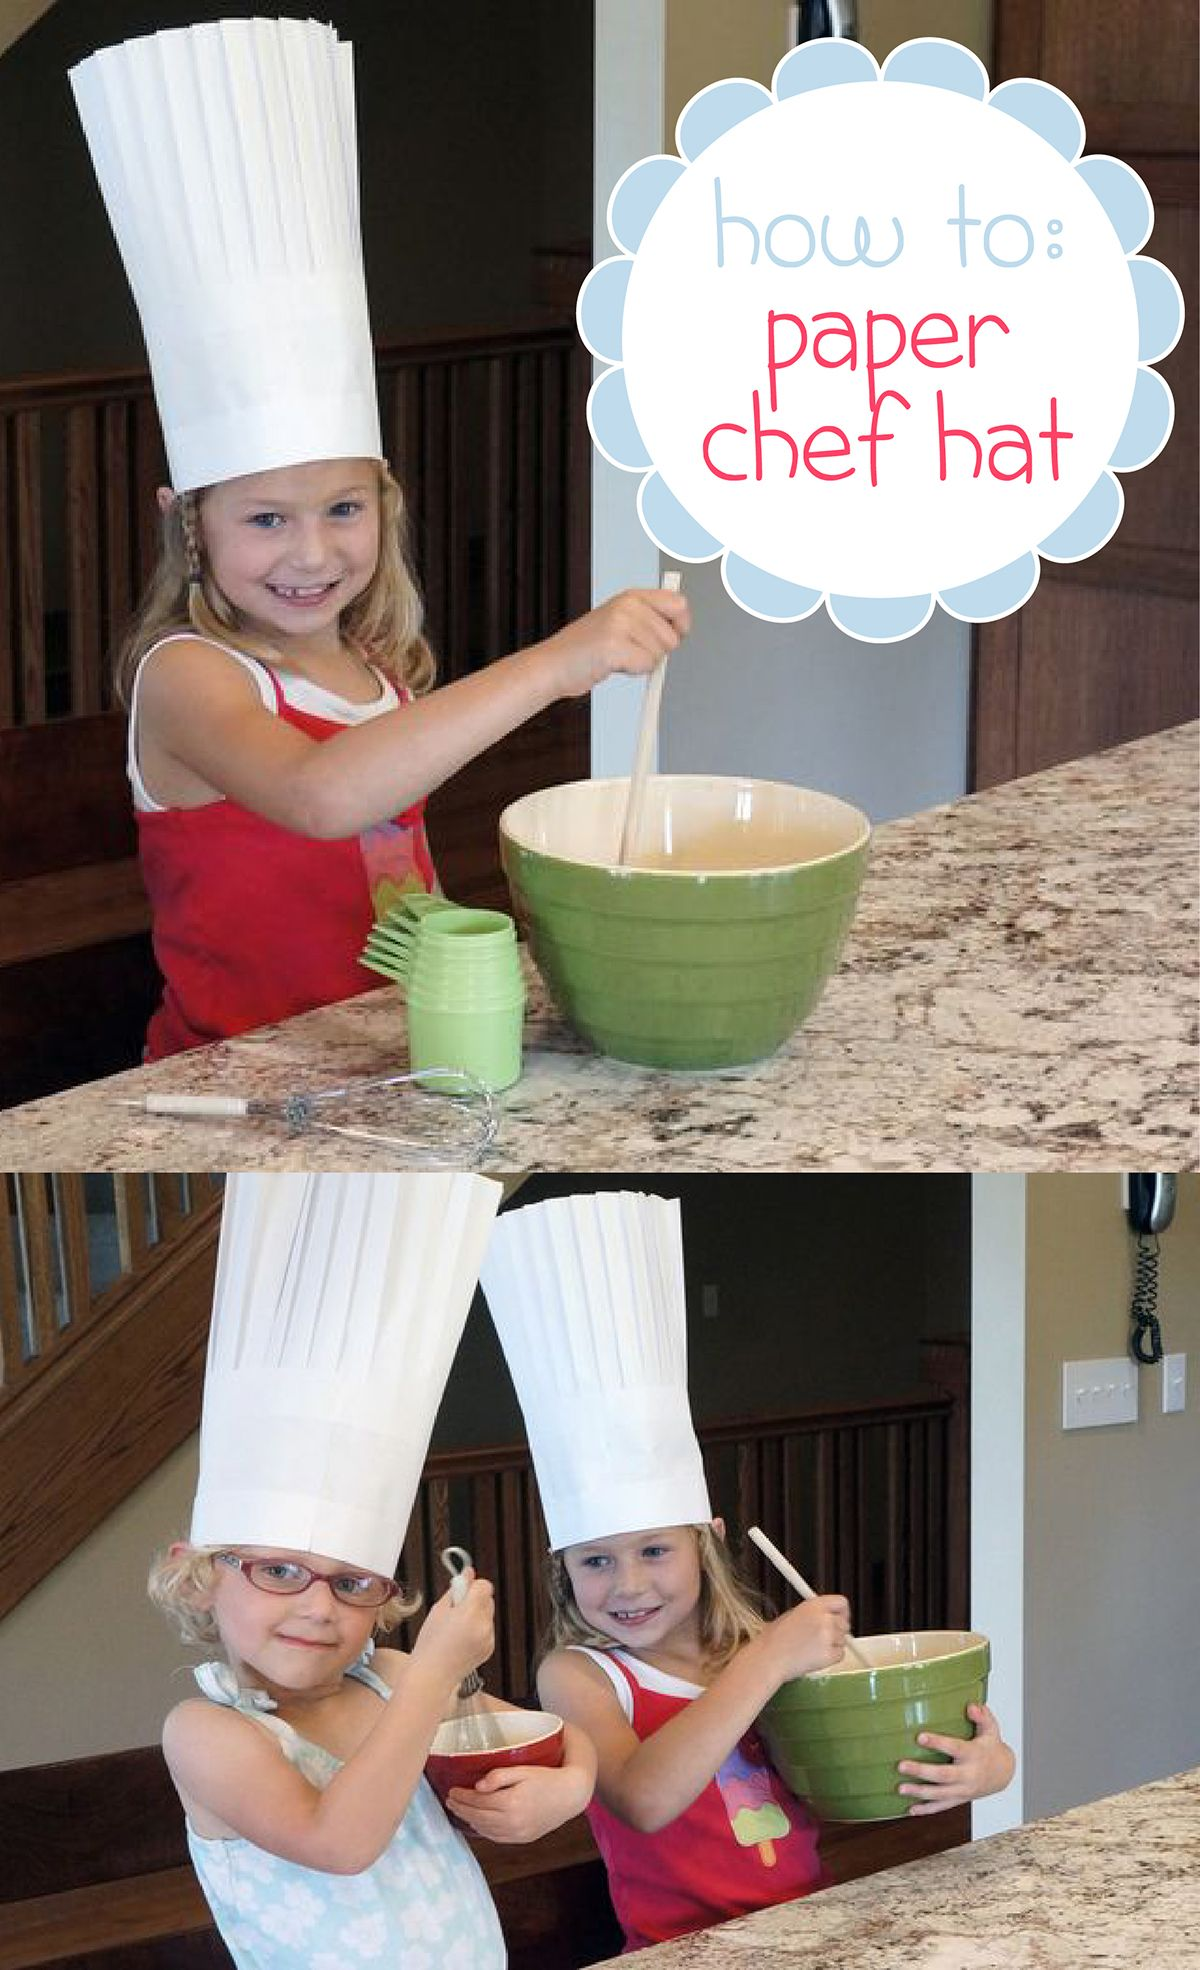 25 unique kids chef hats ideas on pinterest chef hats a chef and chef will holland. Black Bedroom Furniture Sets. Home Design Ideas